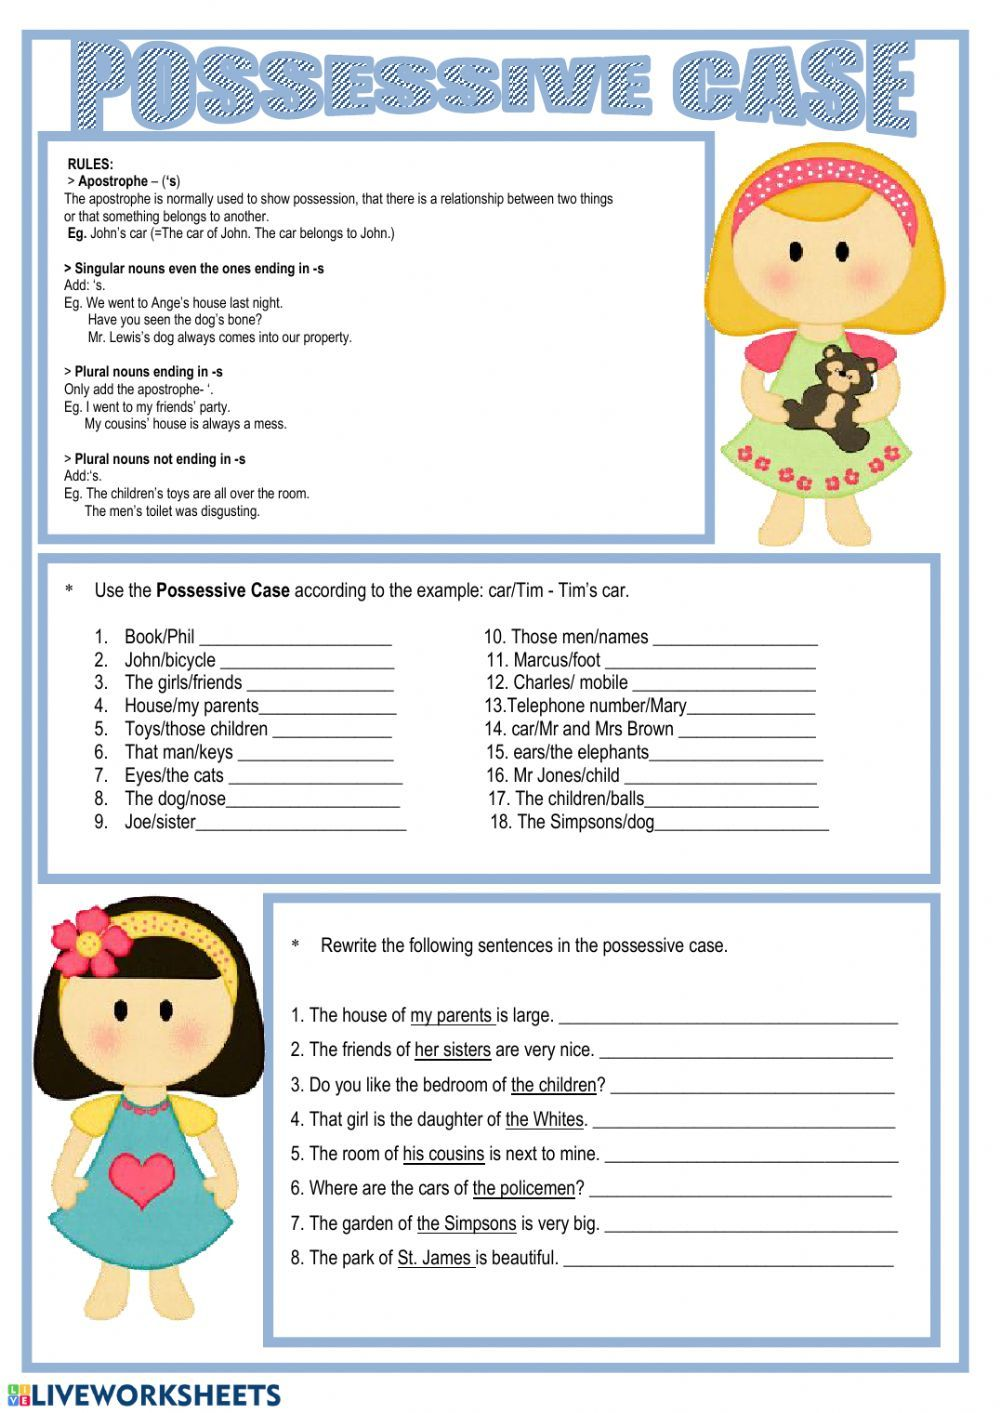 Nouns in Possessive case - Interactive worksheet   Possessive nouns  worksheets [ 1413 x 1000 Pixel ]